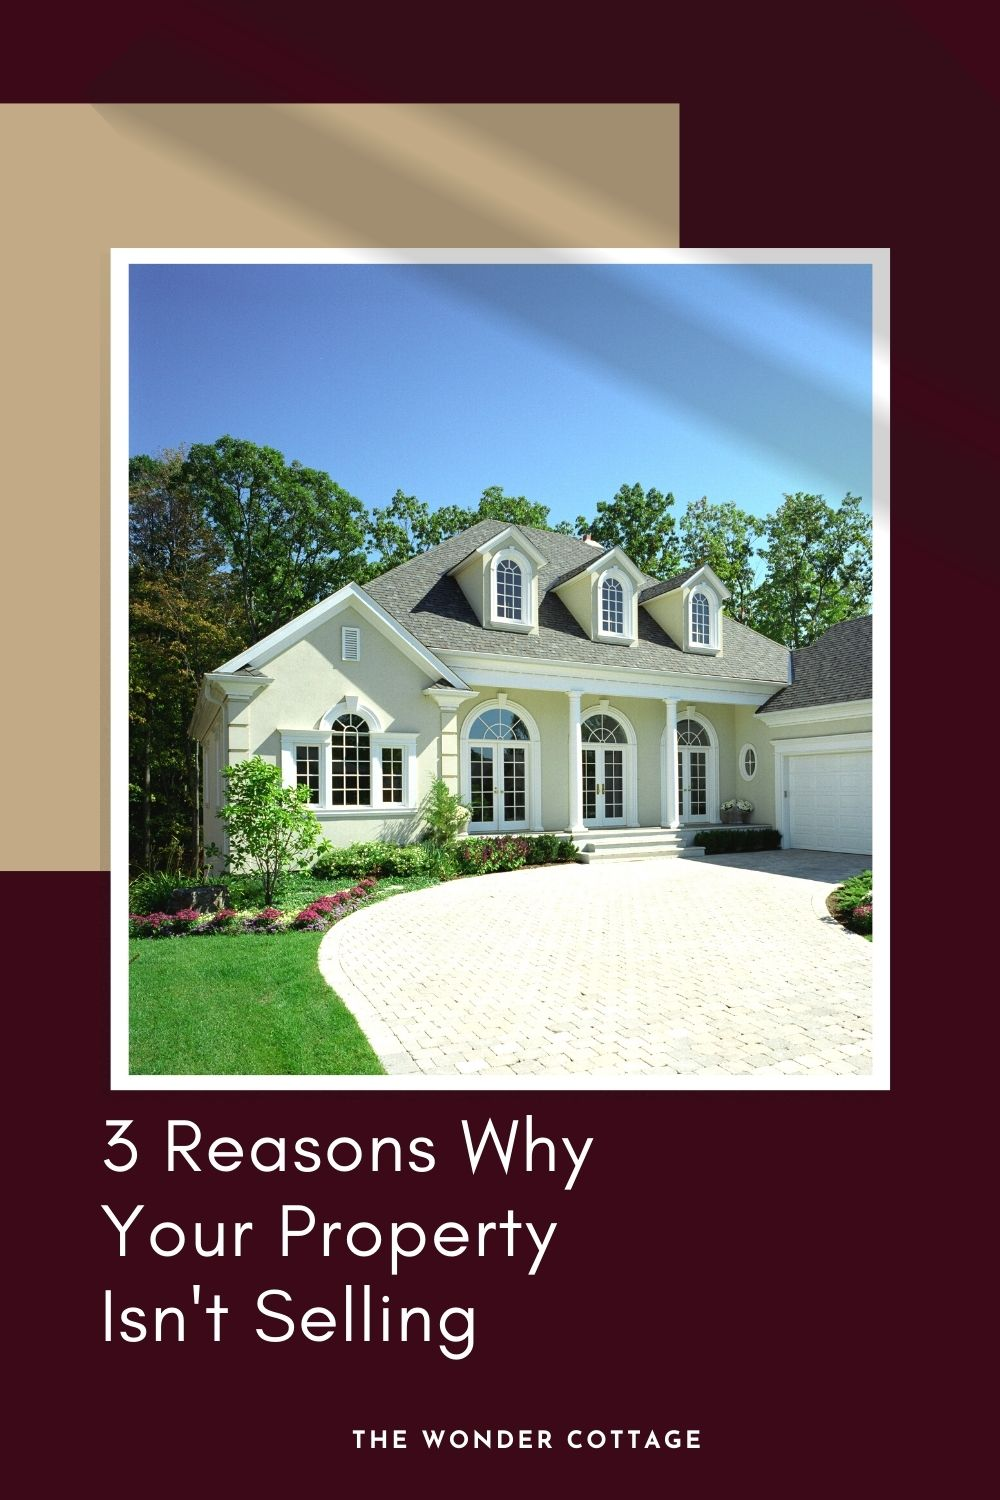 3 reasons why your property isn't selling